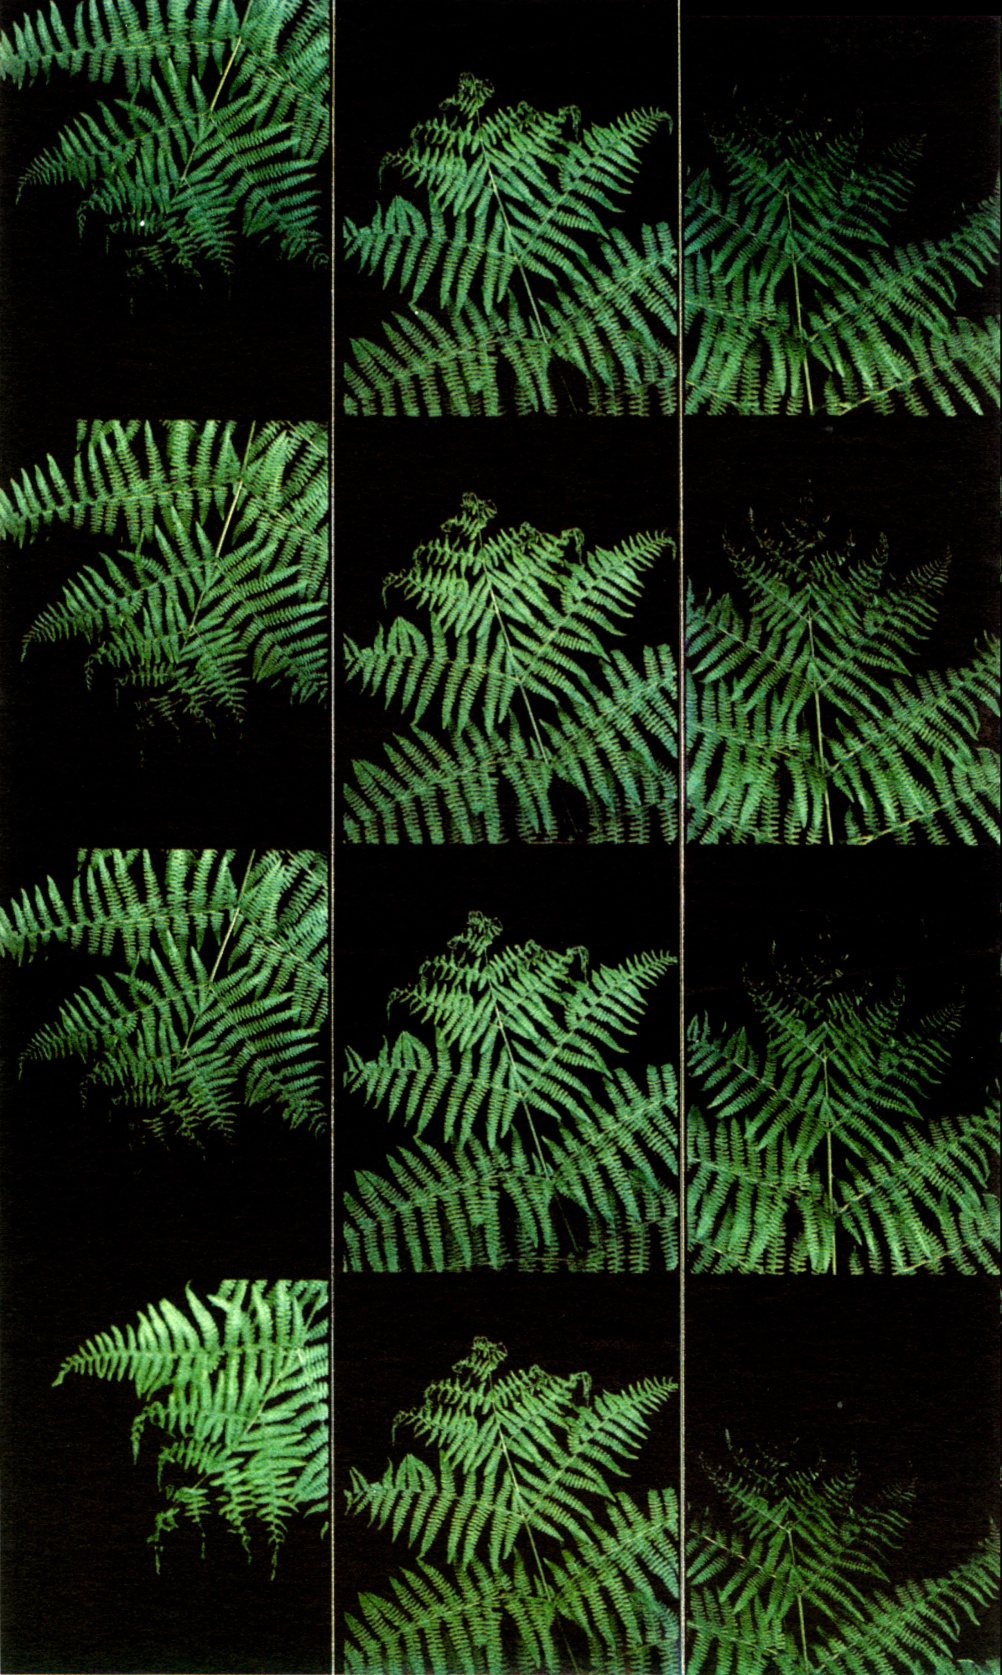 Liz Rideal, Finger Ferns, photobooth photos, 2000